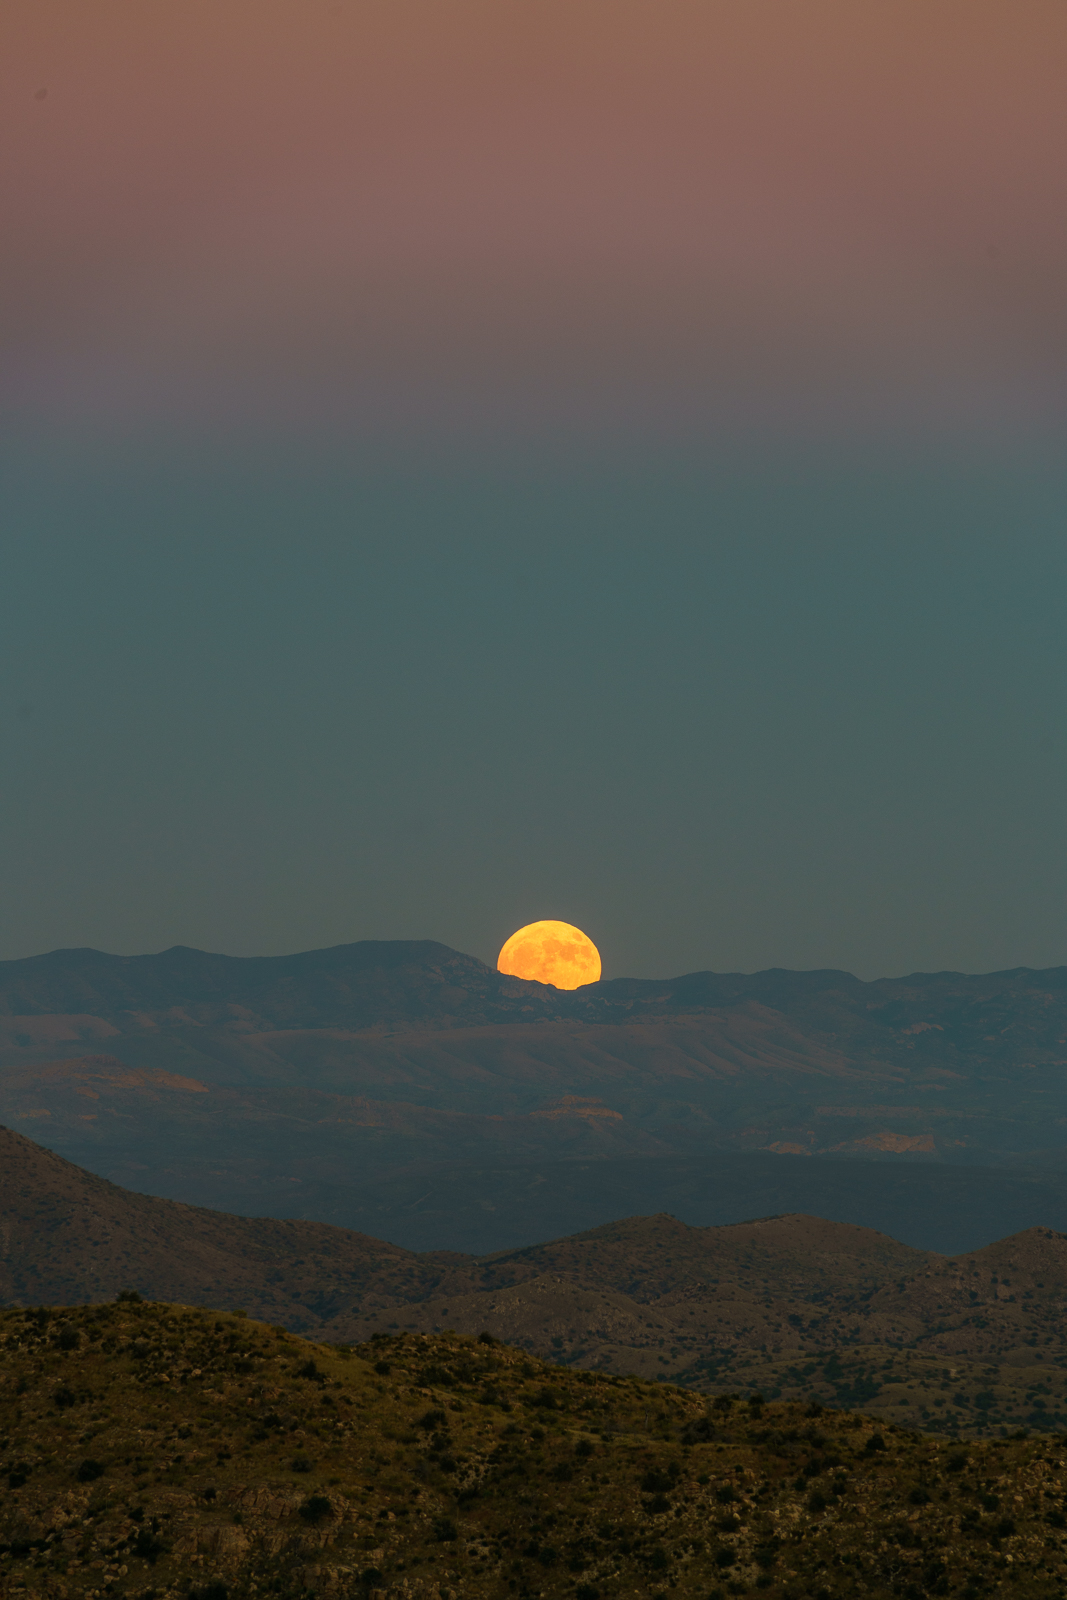 A Hunter's Moon rising behind the Winchester Mountains - taken near the Bellota Trail. October 2016.